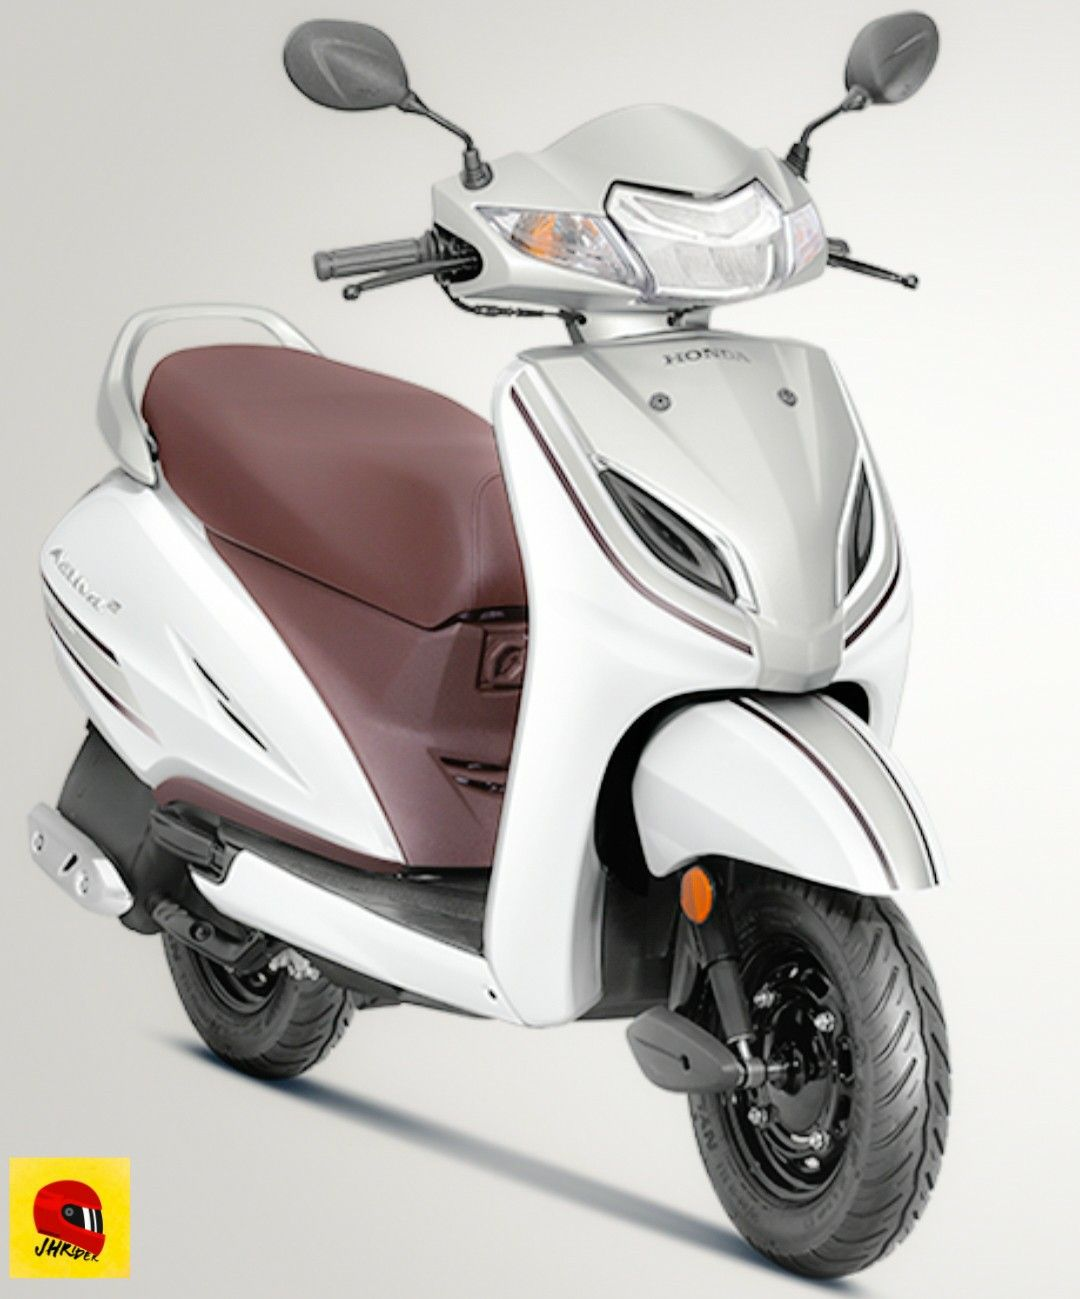 New Activa 6g 2020 Bs6 Price Details 2020 Best Scooter